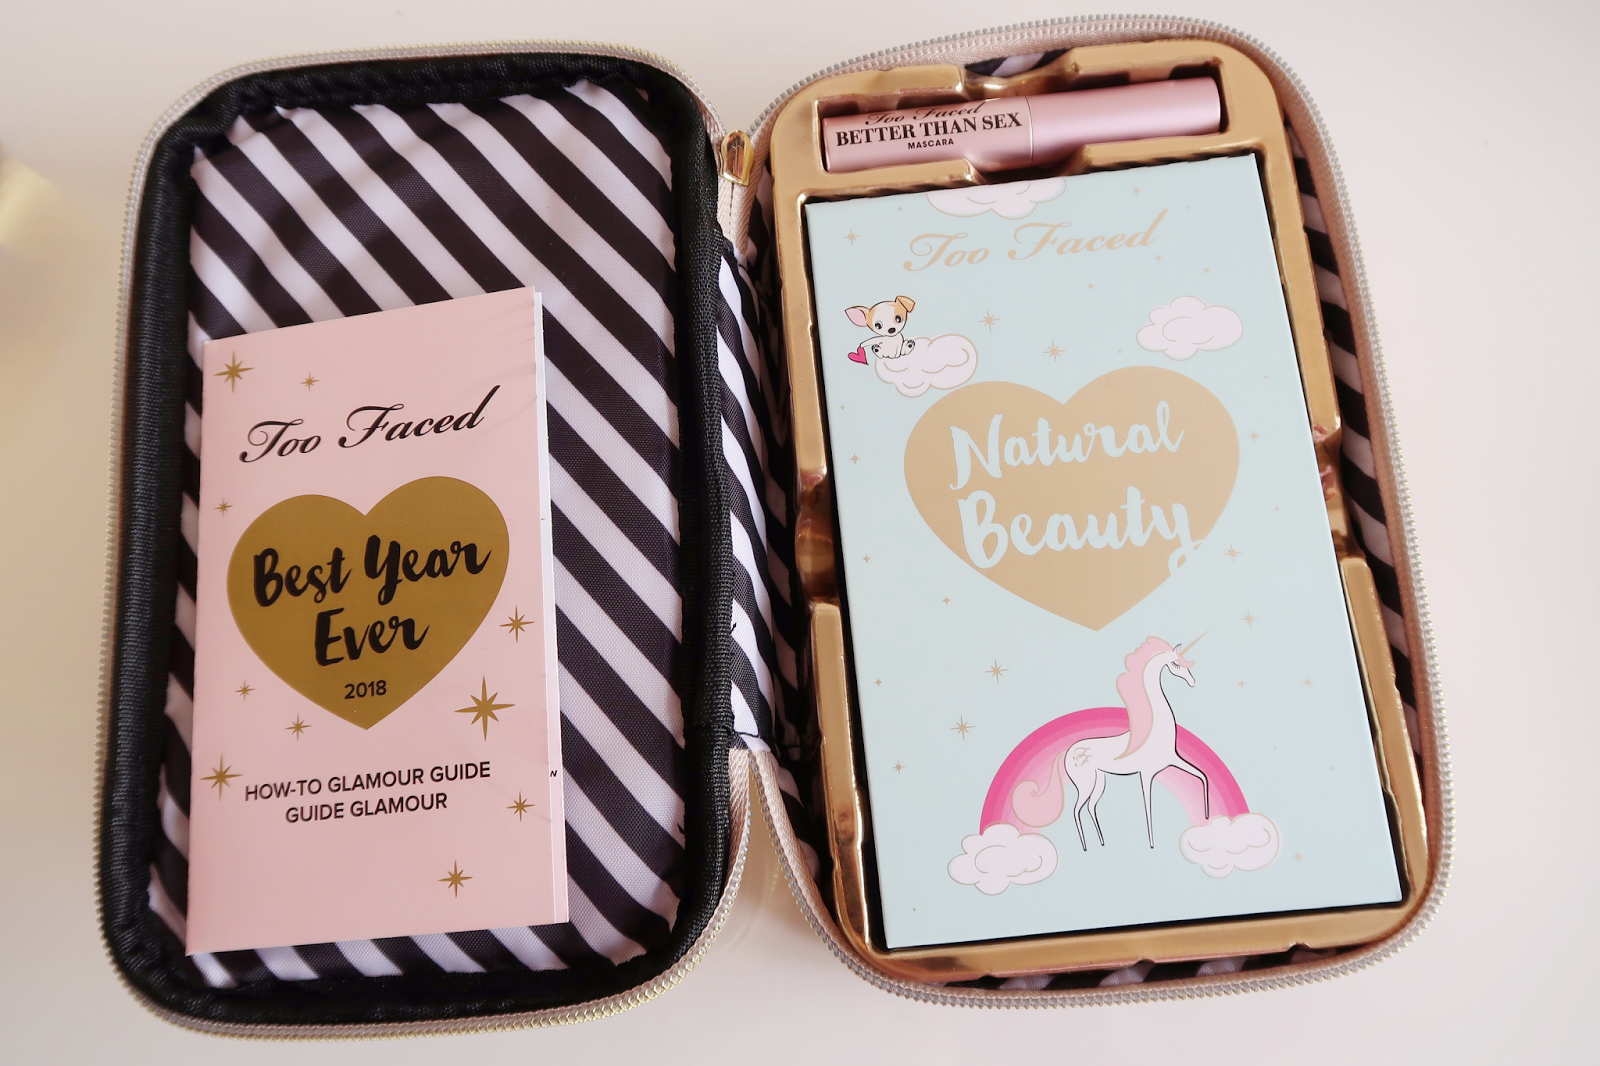 Too Faced Christmas 2017 - Pretty Little Planner & Best Year Ever ...